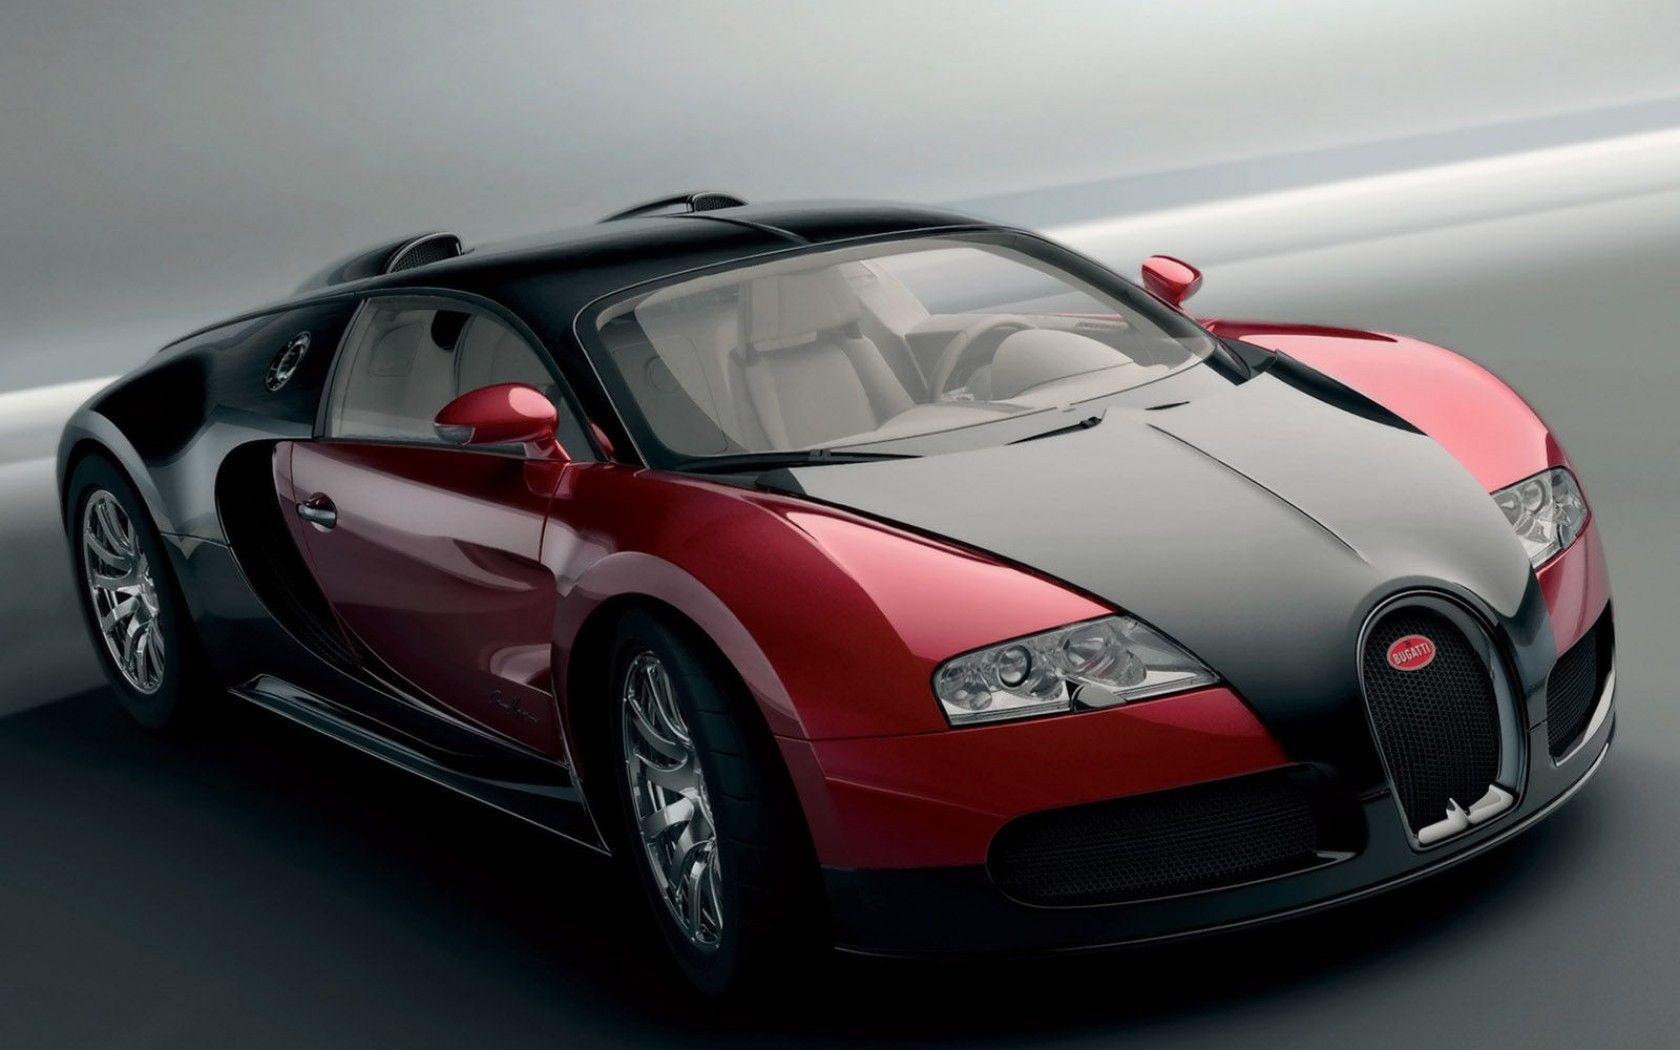 Red And Black Bugatti Veyron Wallpaper Car Red And Black